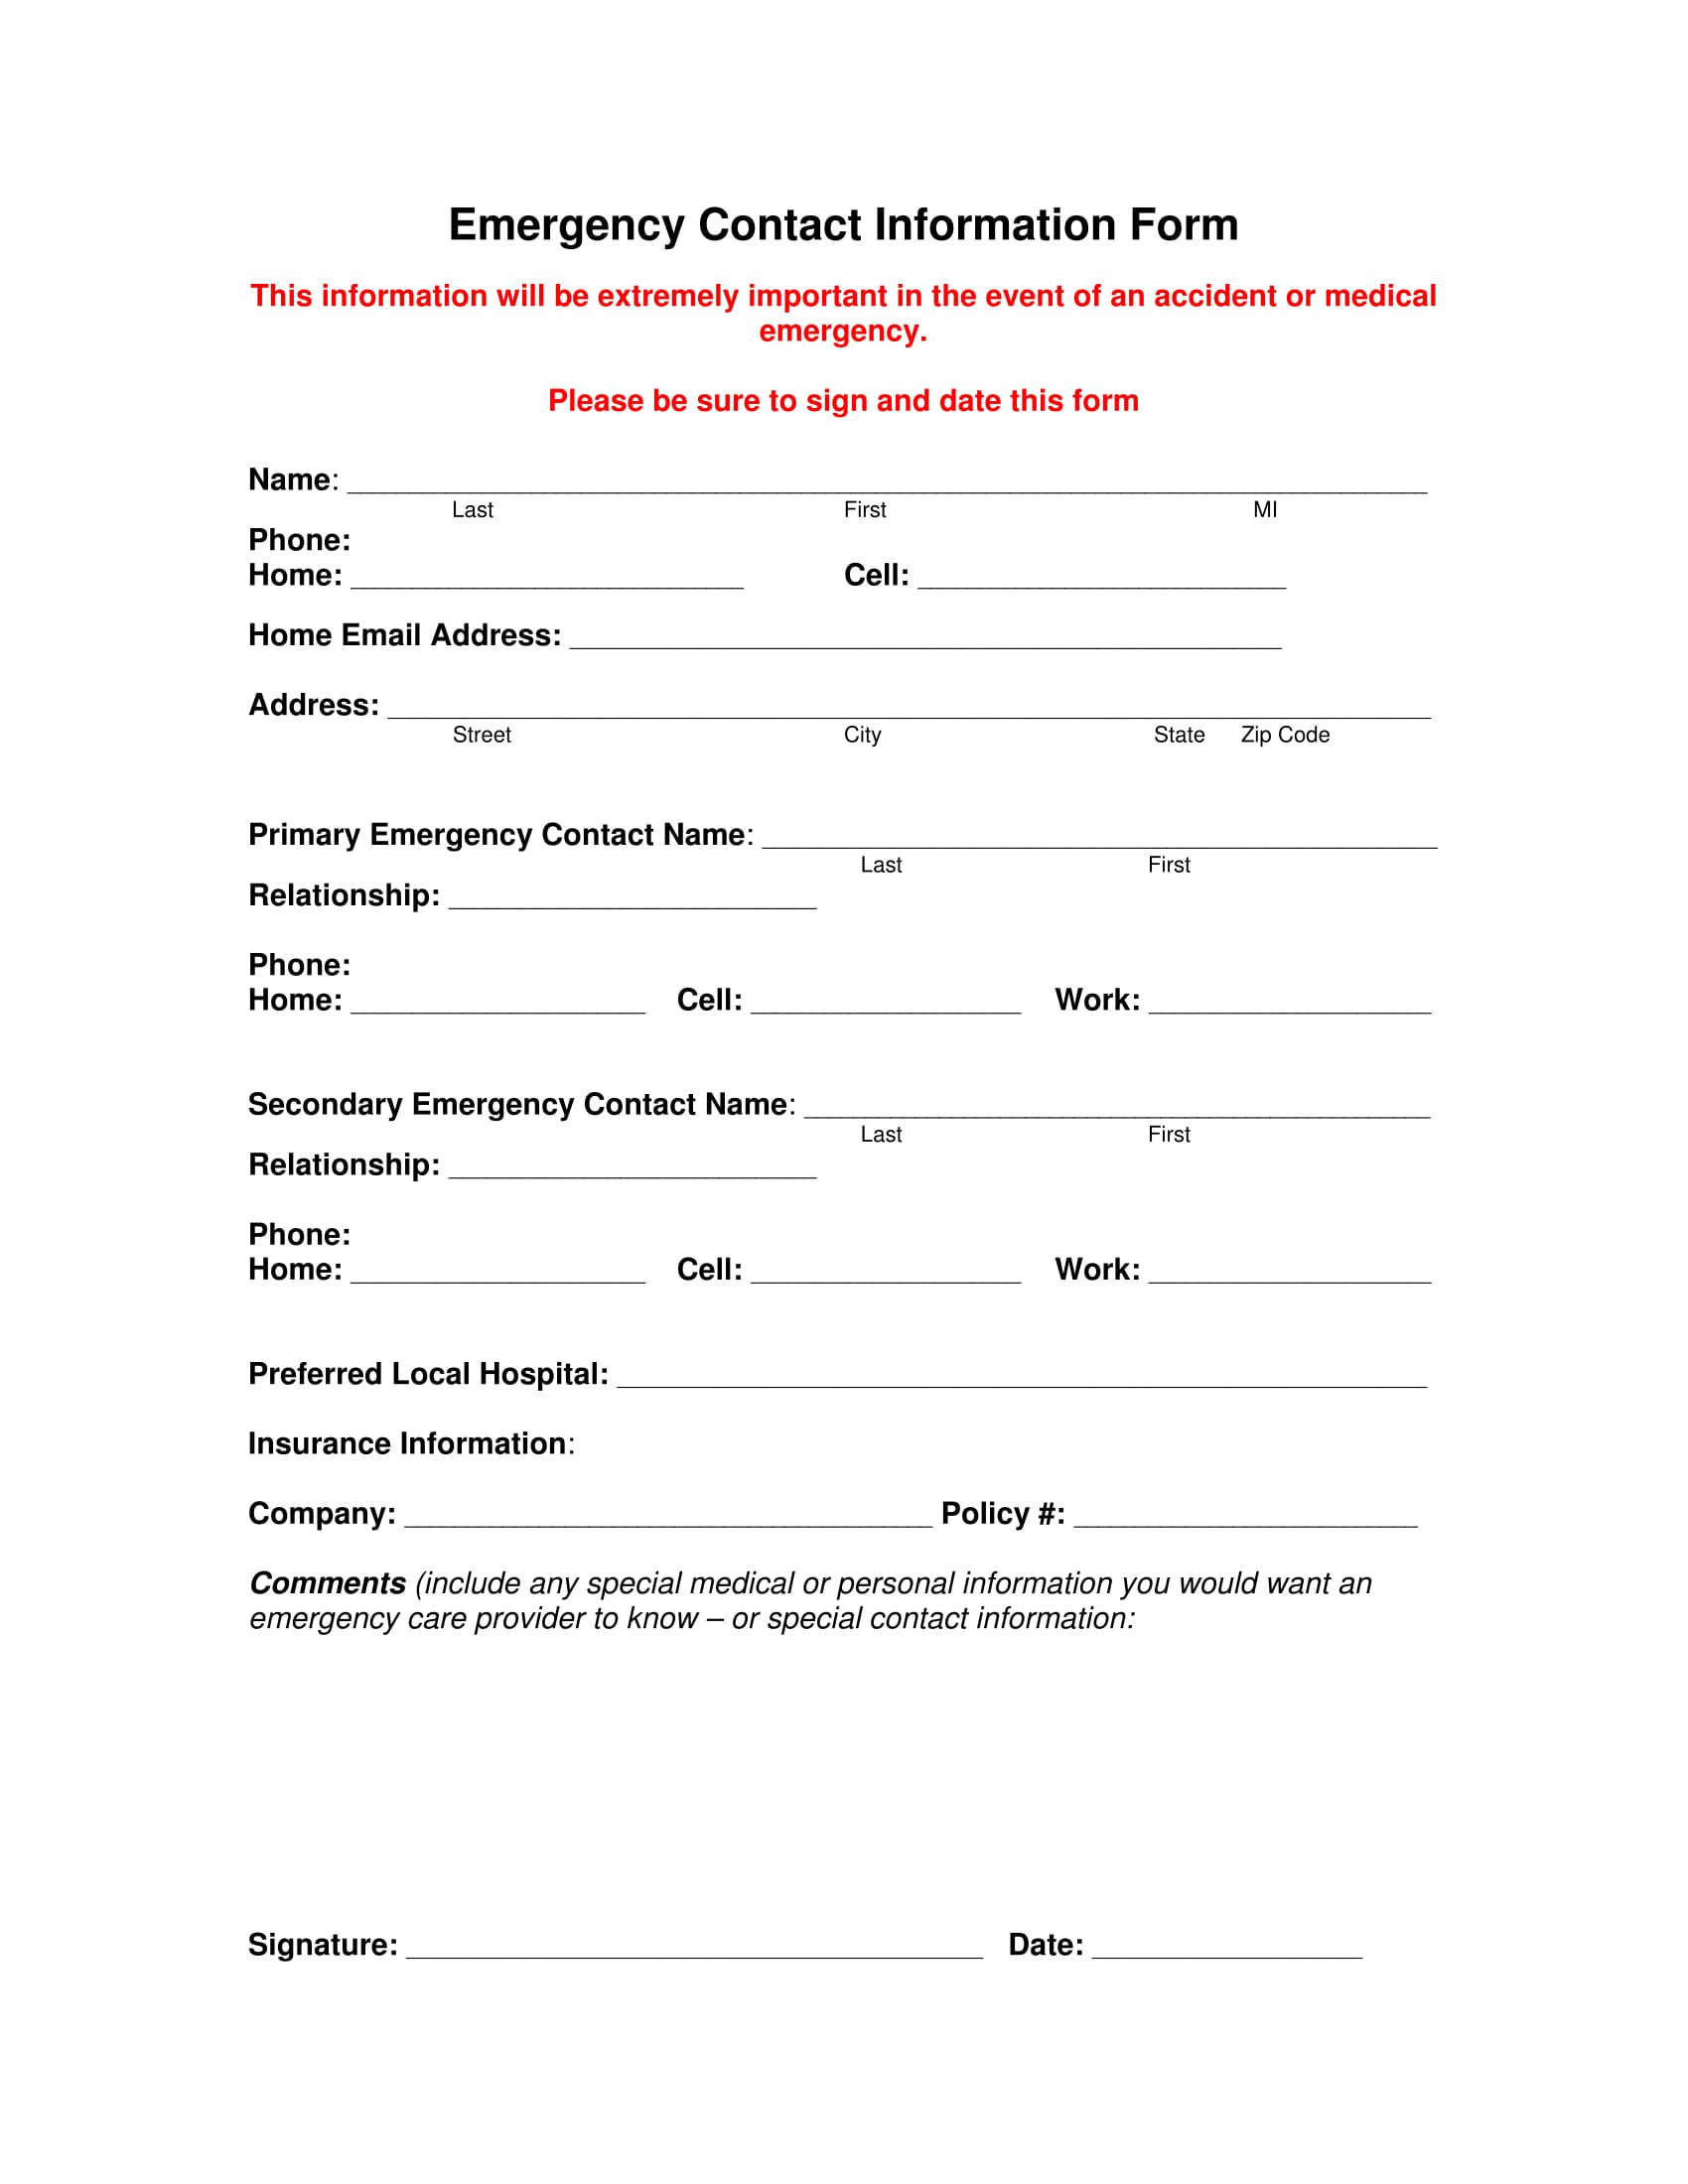 Emergency Contact form Template